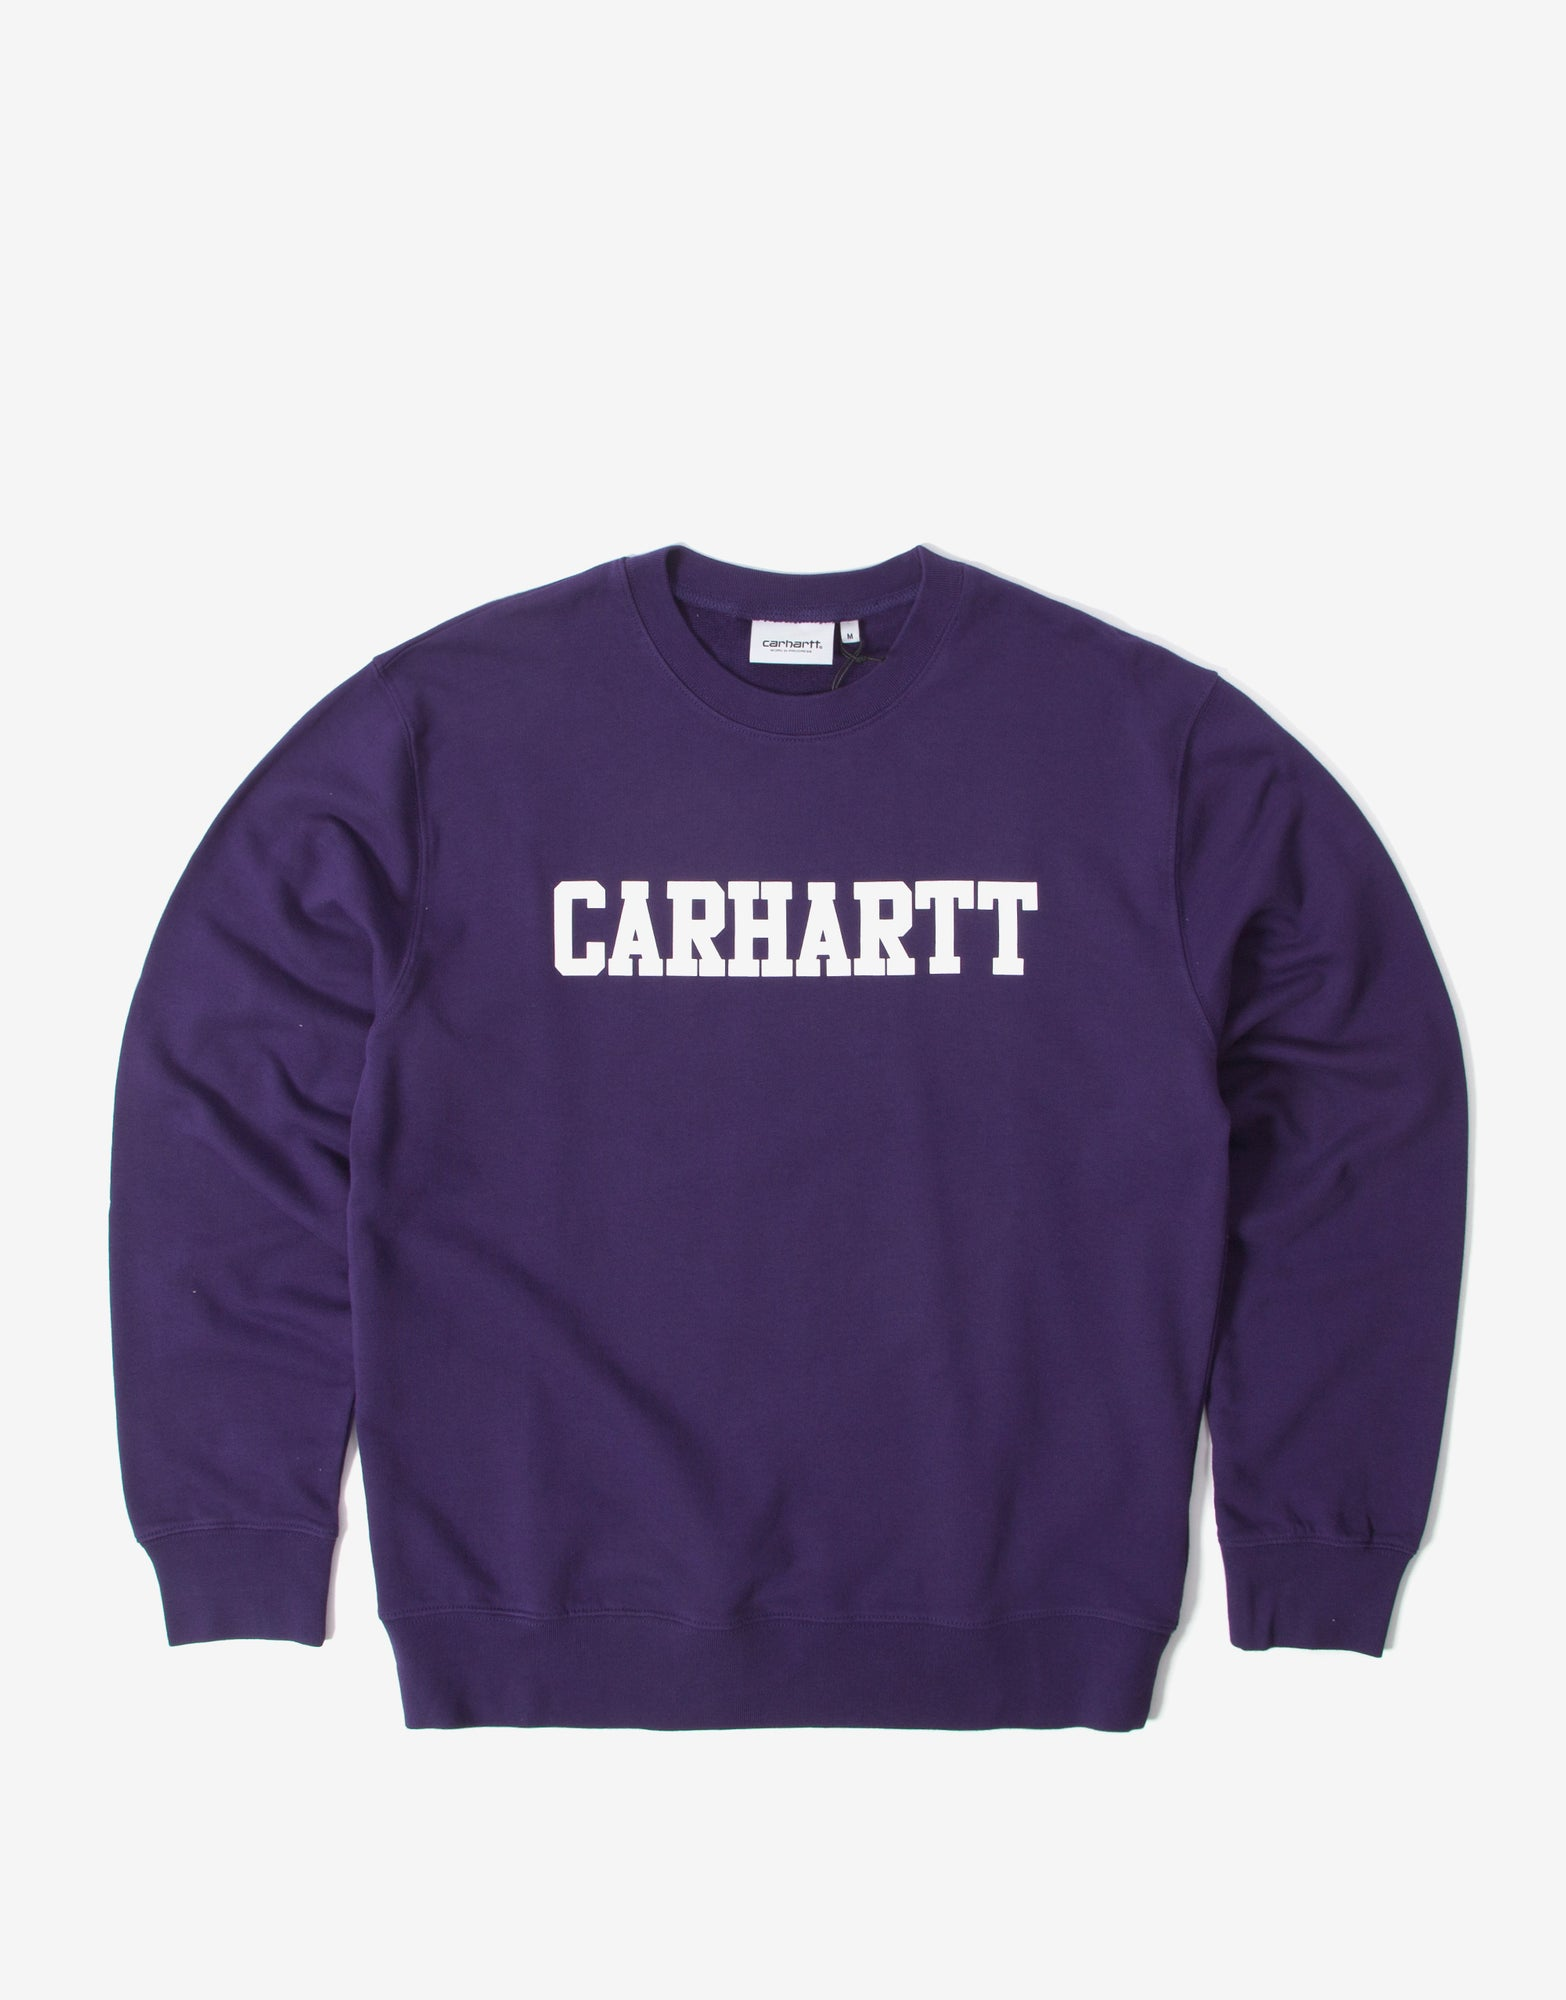 Carhartt College Sweatshirt - Royal Violet/White